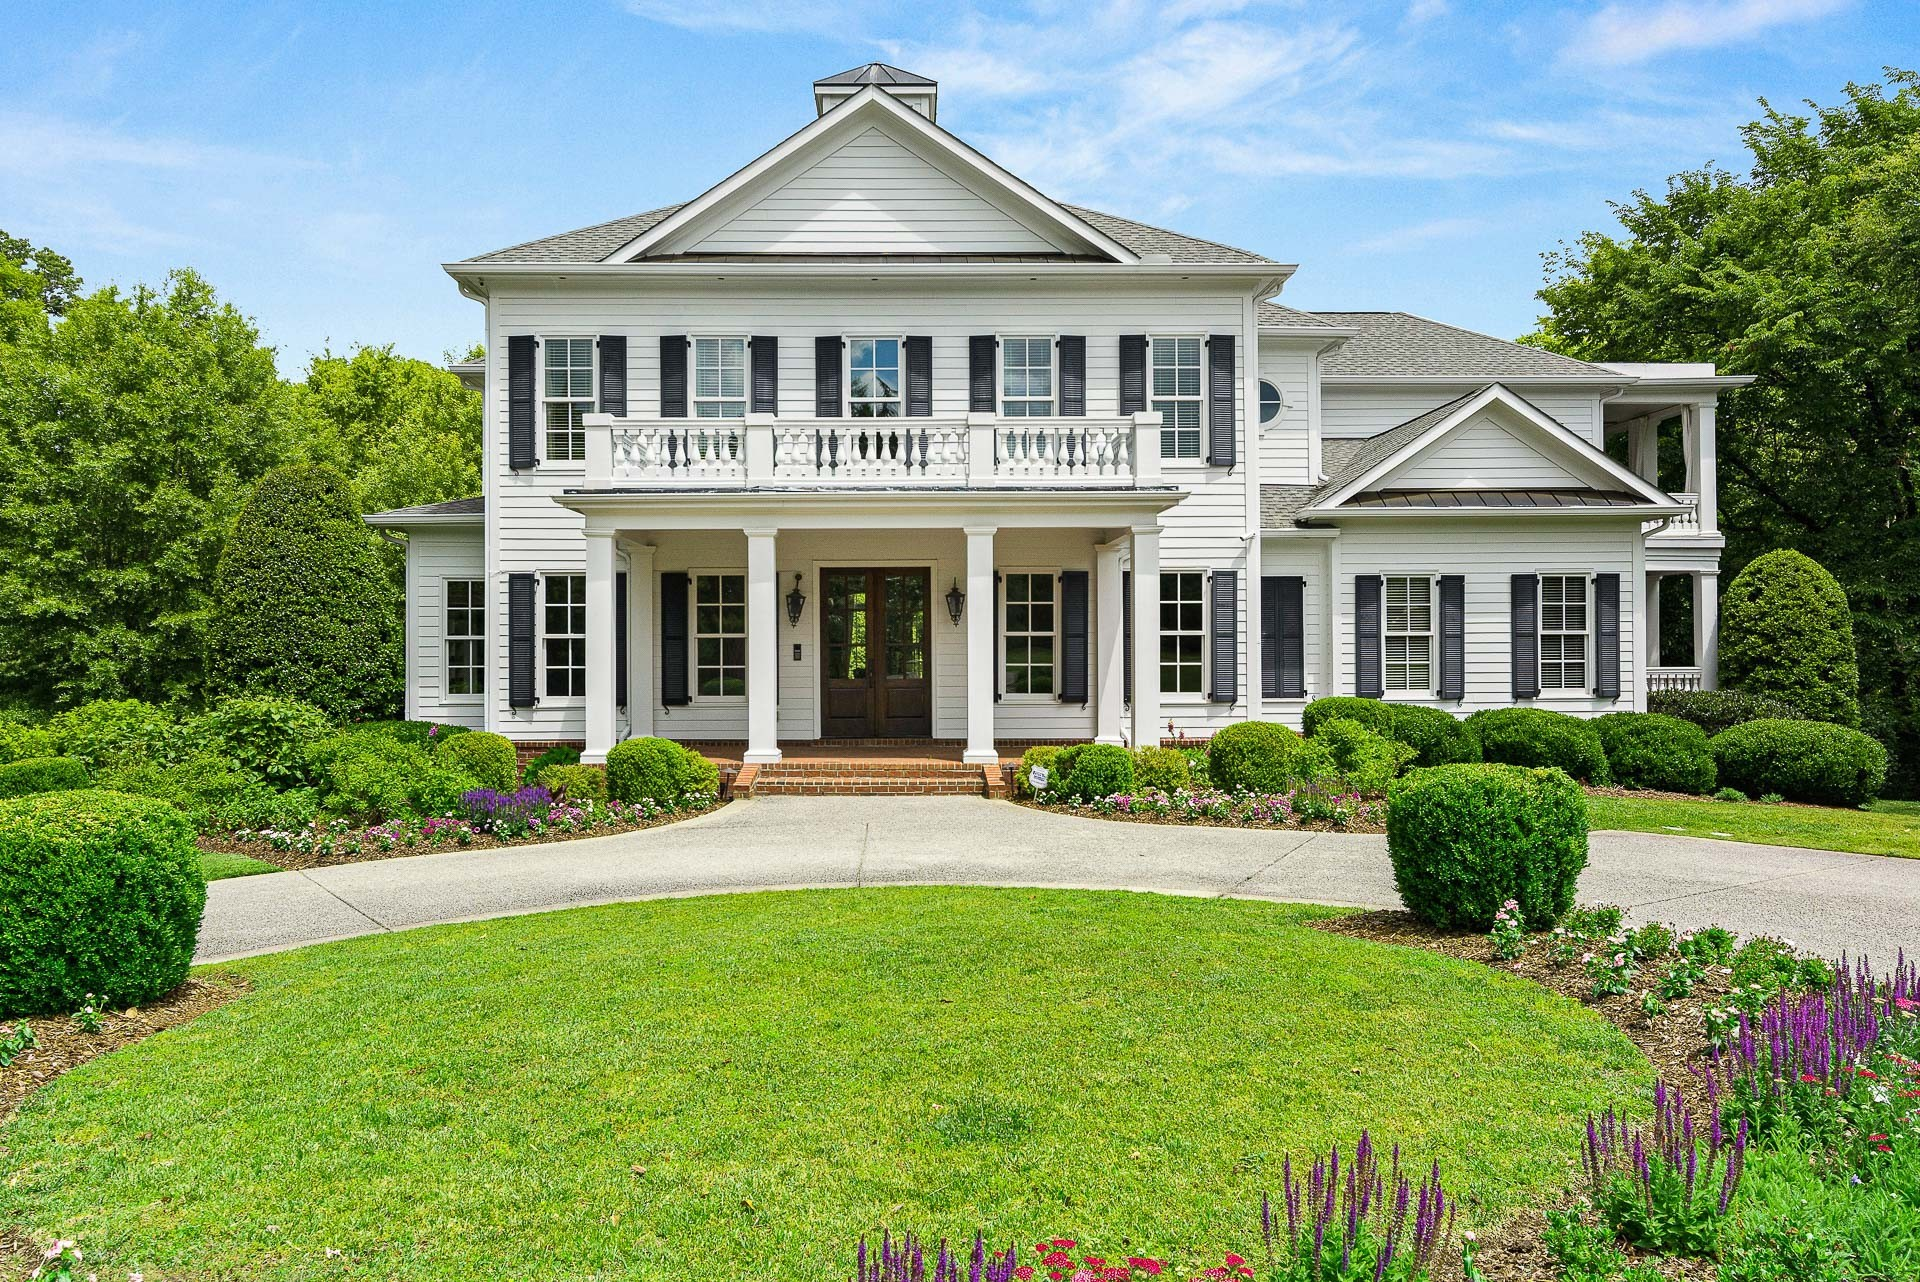 Exceptional Estate on private, wooded 3.38 acres in Brentwood. Southern Elegance with over 2,000 square feet of covered porches and terraces. Home overlooks beautiful private backyard with fenced  pool & play area. Several living areas include keeping room off the kitchen, great room and den all on the main level. Updated master bath, renovated entertaining area in basement level opening to large gathering are with fireplace, perfect for entertaining. 6 car tandem garage, and so much more!